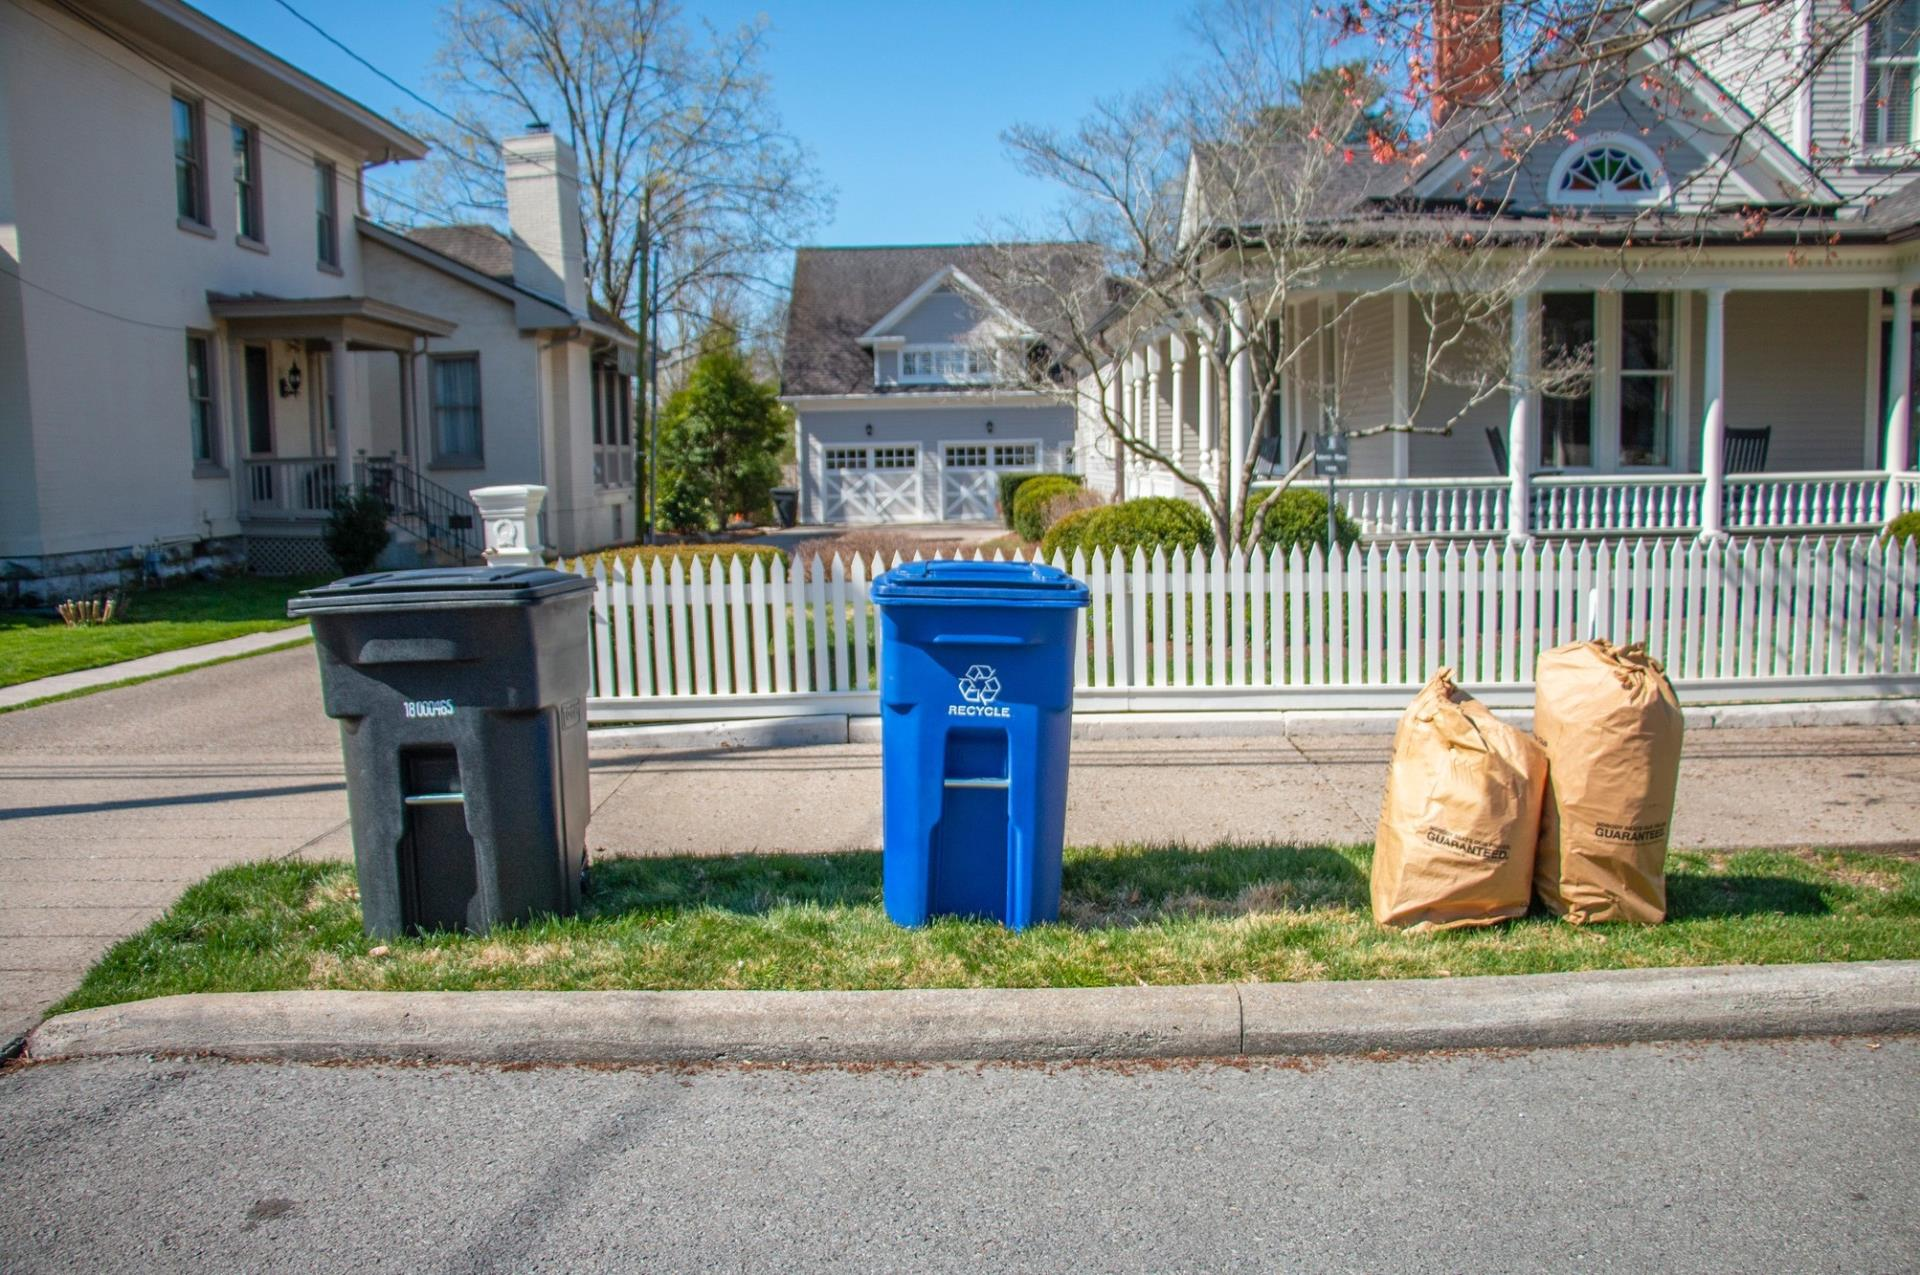 Franklin Approves Moving to Blue Bins in 2020